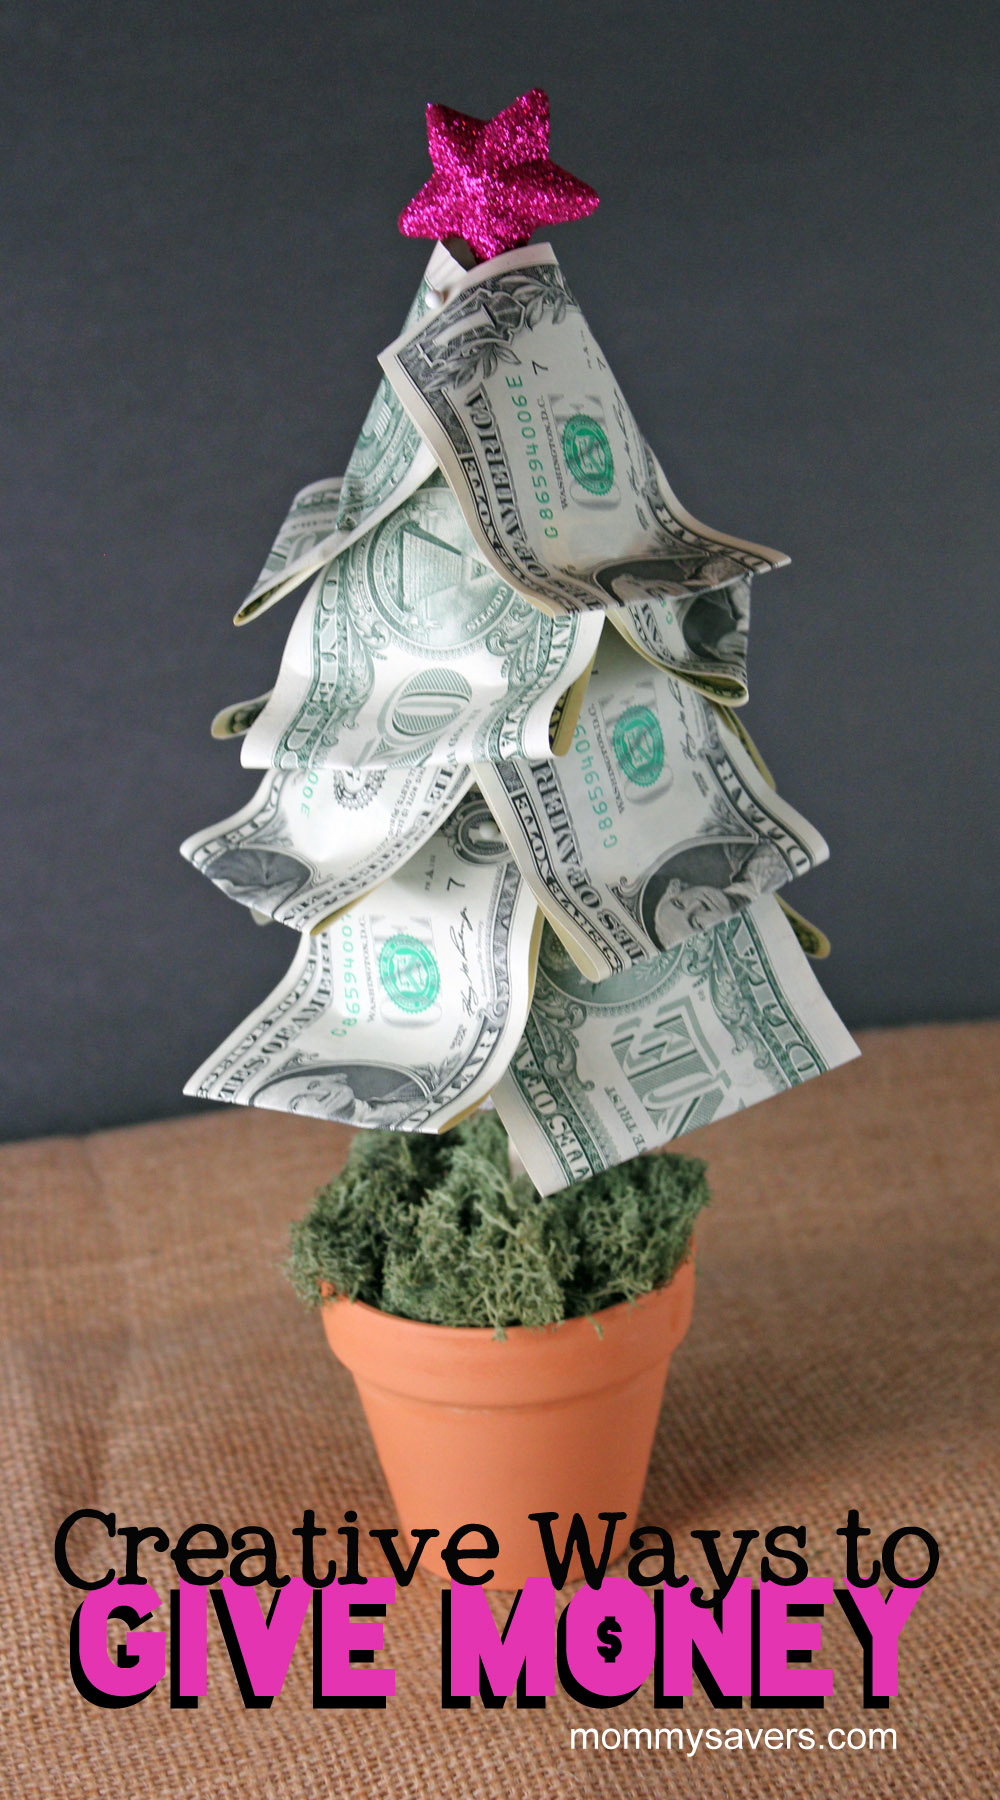 Creative ways to give money mommysavers for Creative christmas ideas